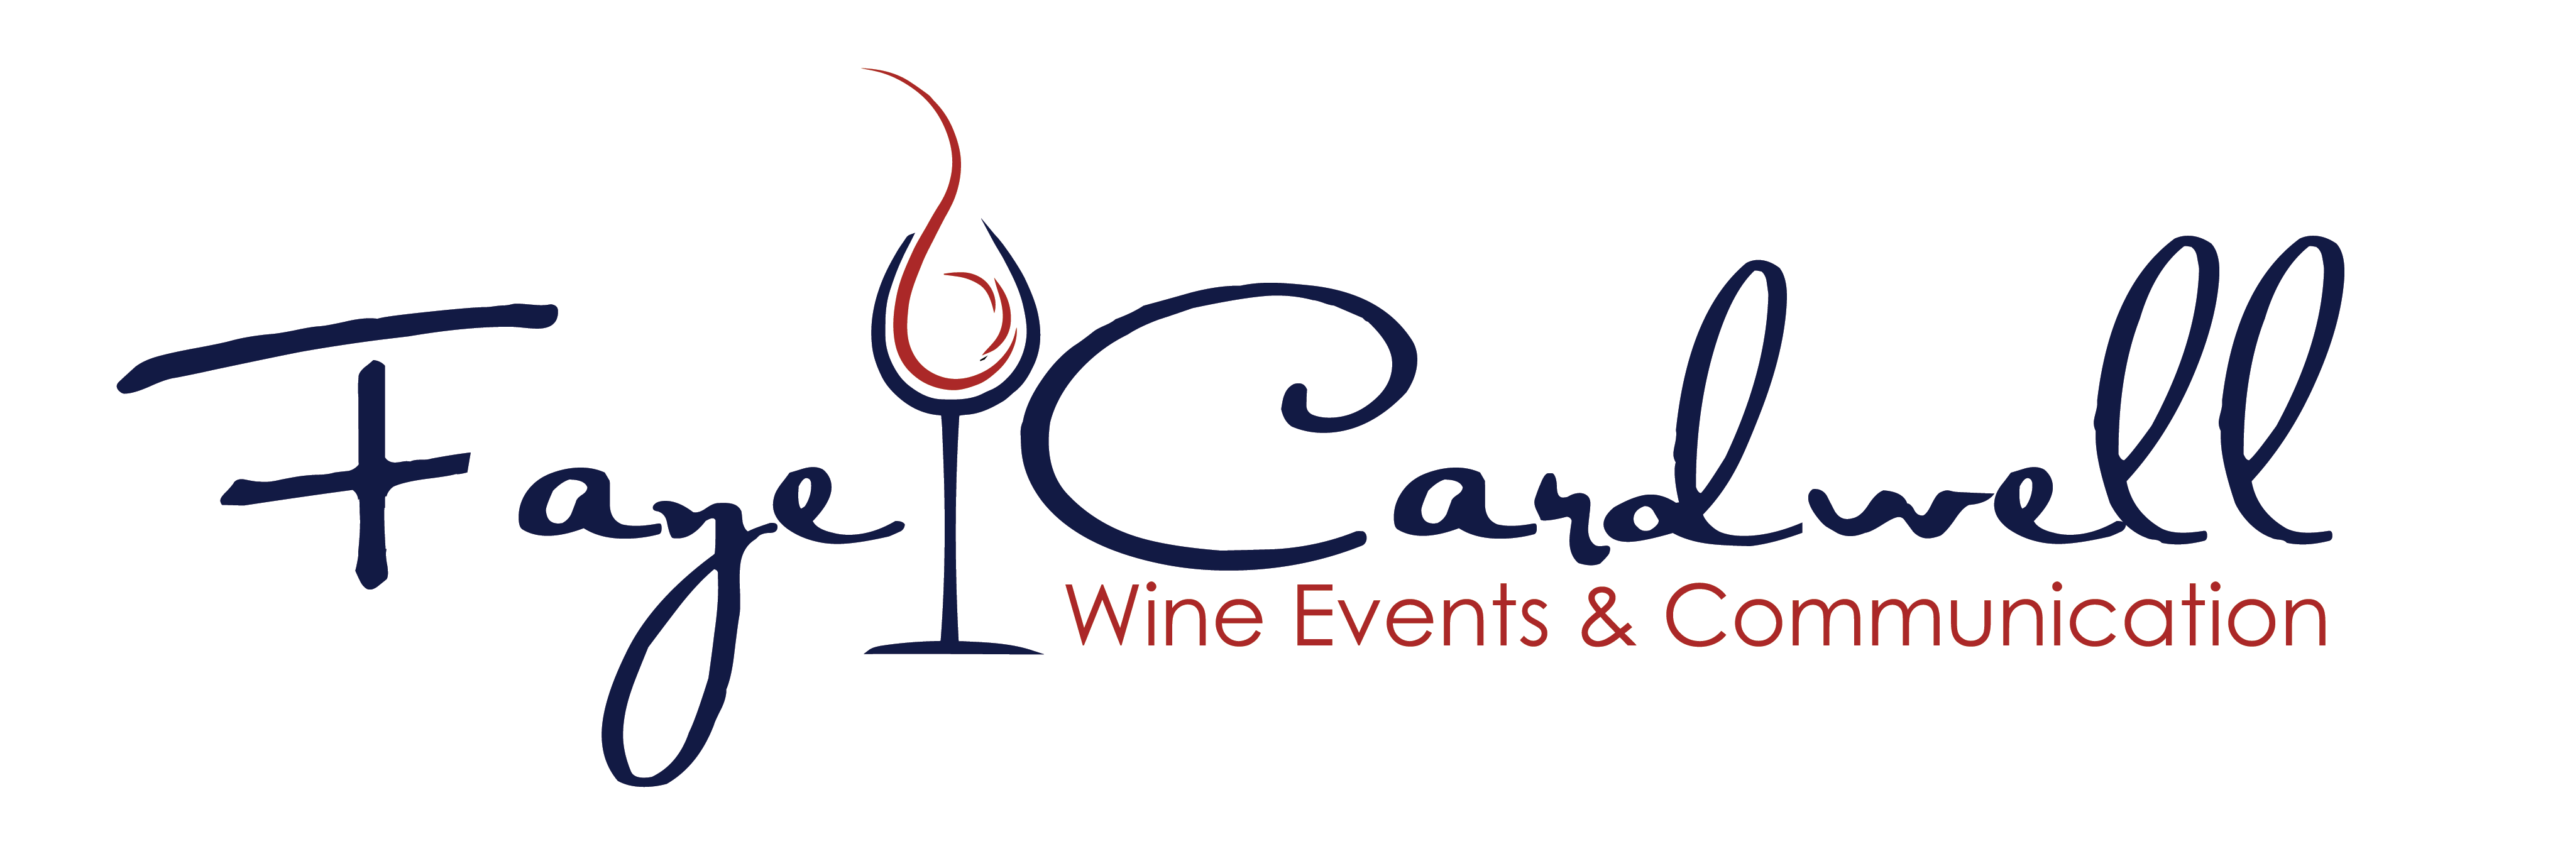 Faye Cardwell Wine Events